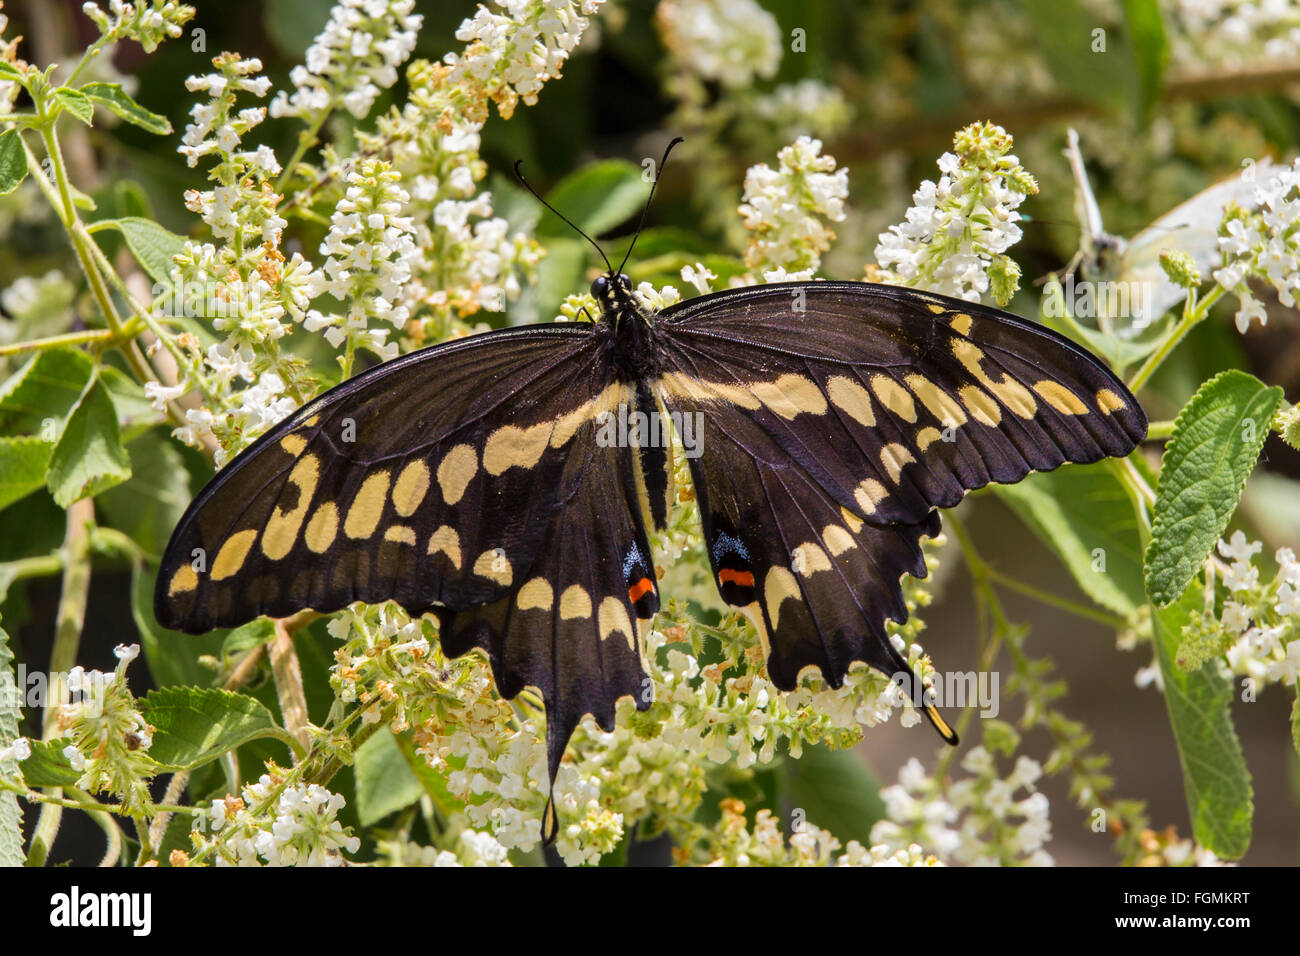 Giant Swallowtail butterfly  Papilio cresphontes at The Butterfly Estates in Fort Myers Florida - Stock Image